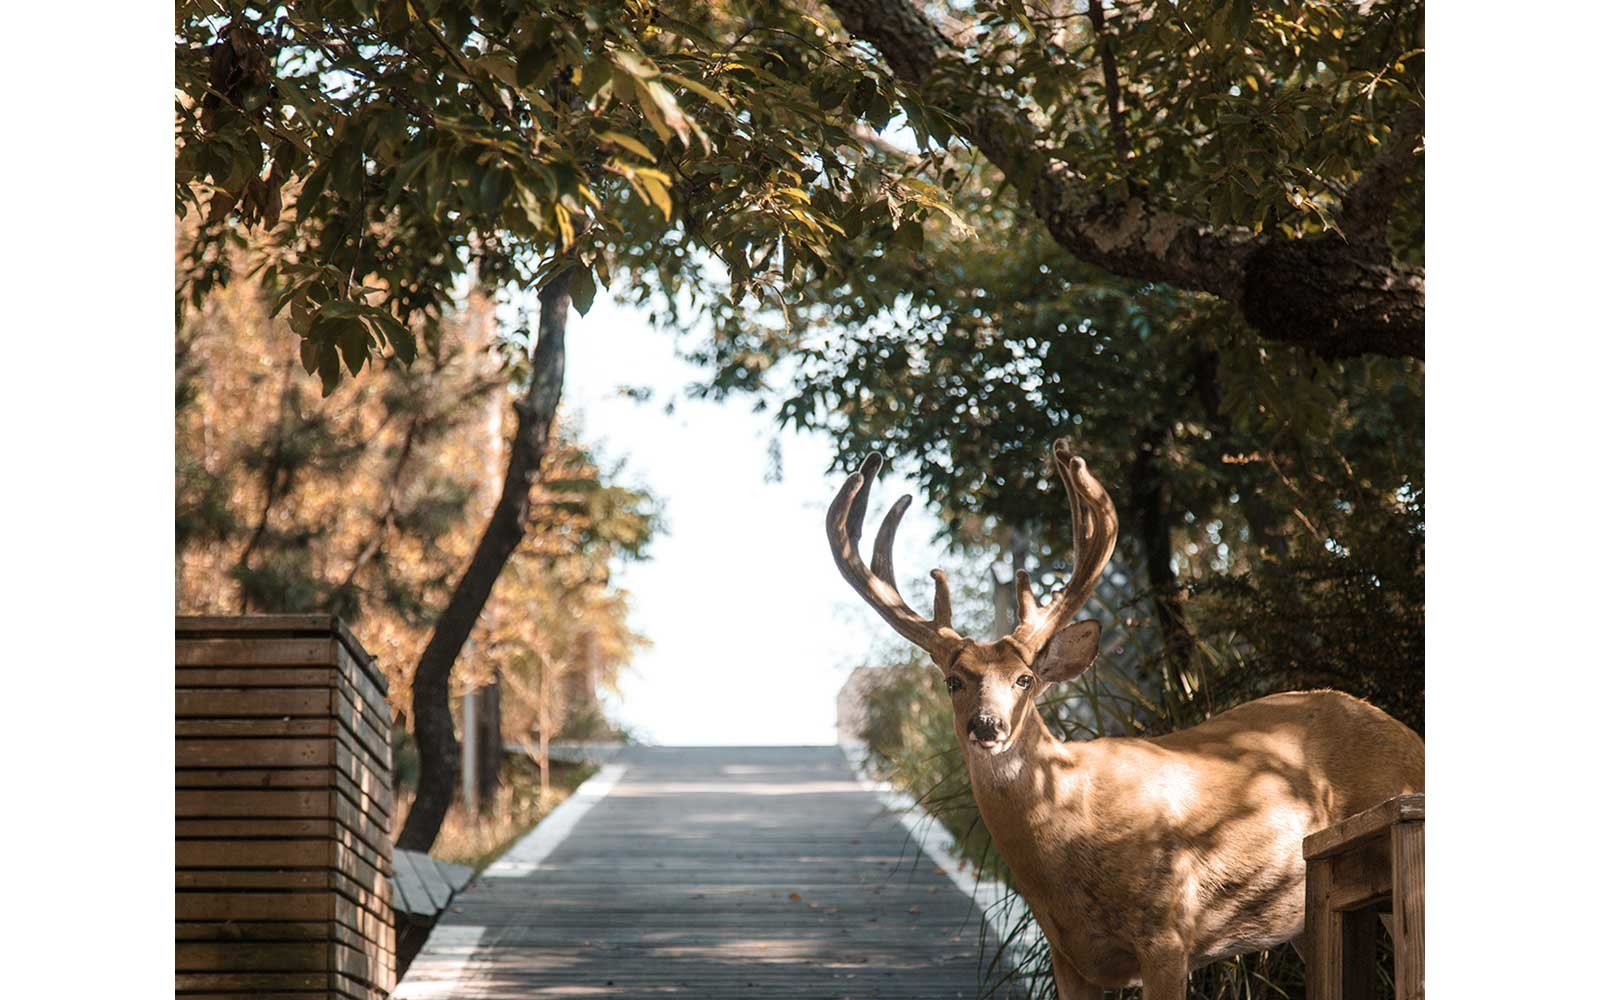 A deer on the road at Fire island, New York